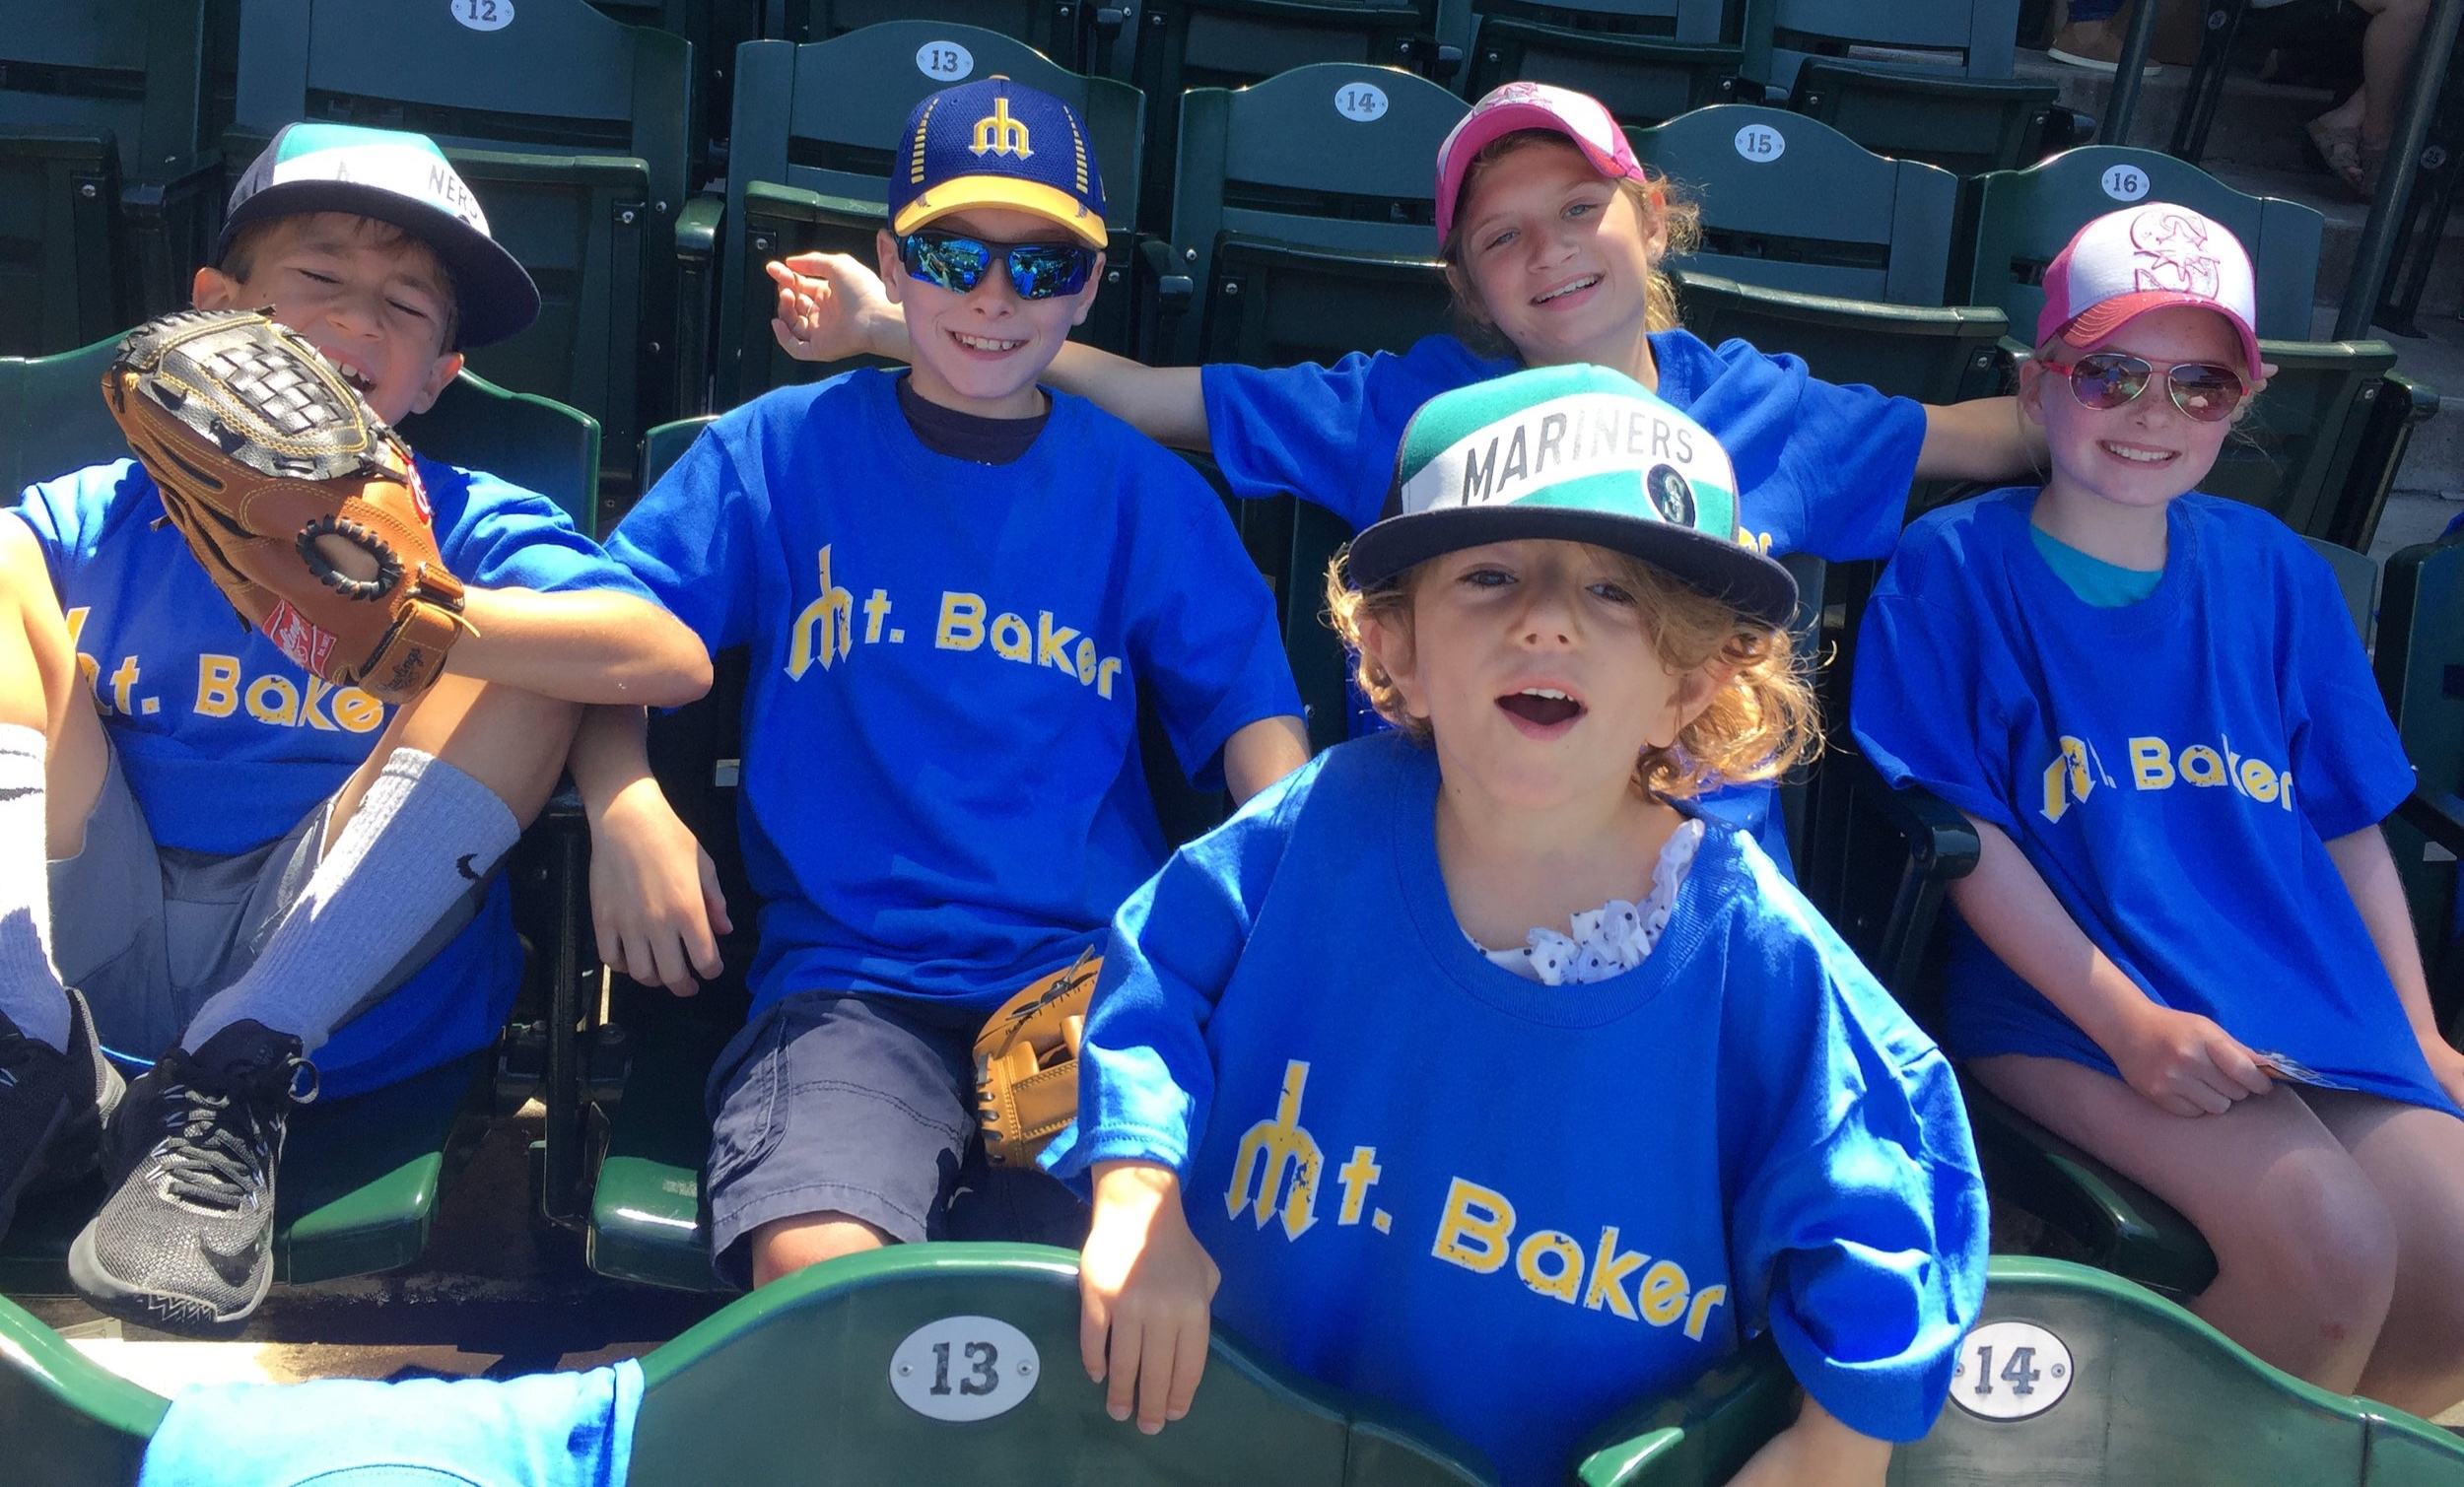 mount baker mariners fans at the neighborhood event in July 2018 (Mariners won)! 2018 edition t-shirts worn